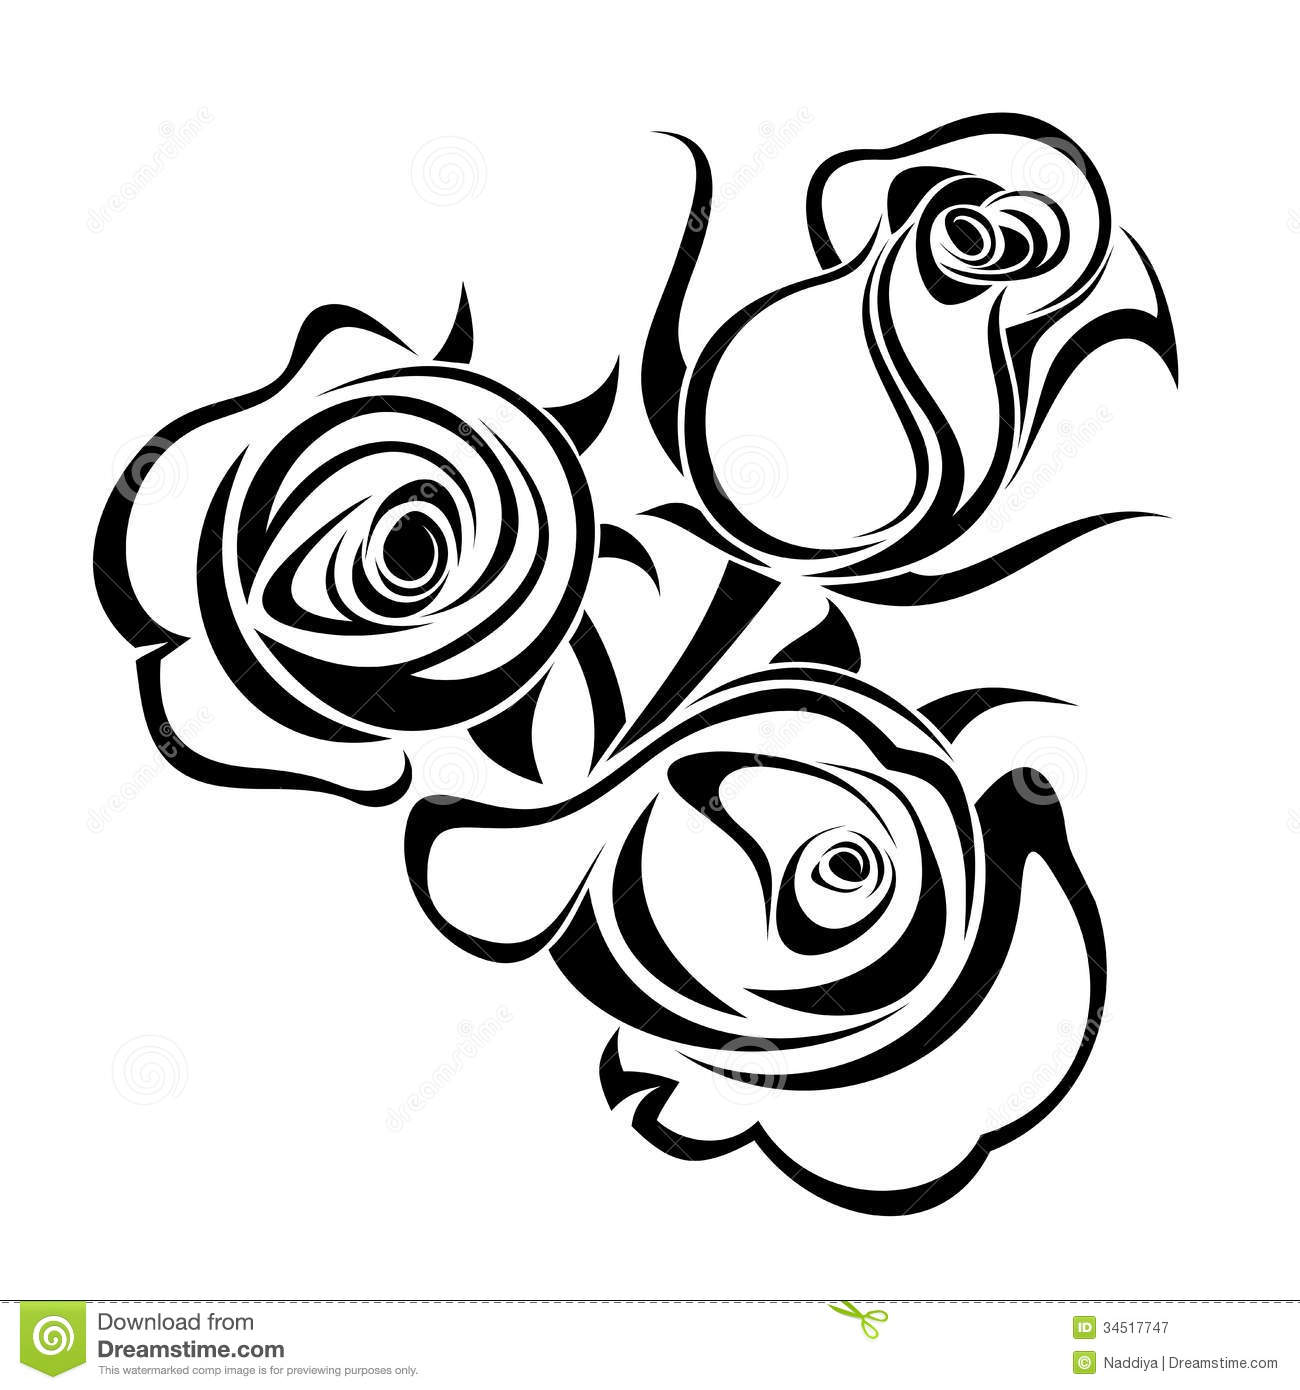 Rose Bouquet Clip Art Black And White Rose Buds Black Silhouettes.